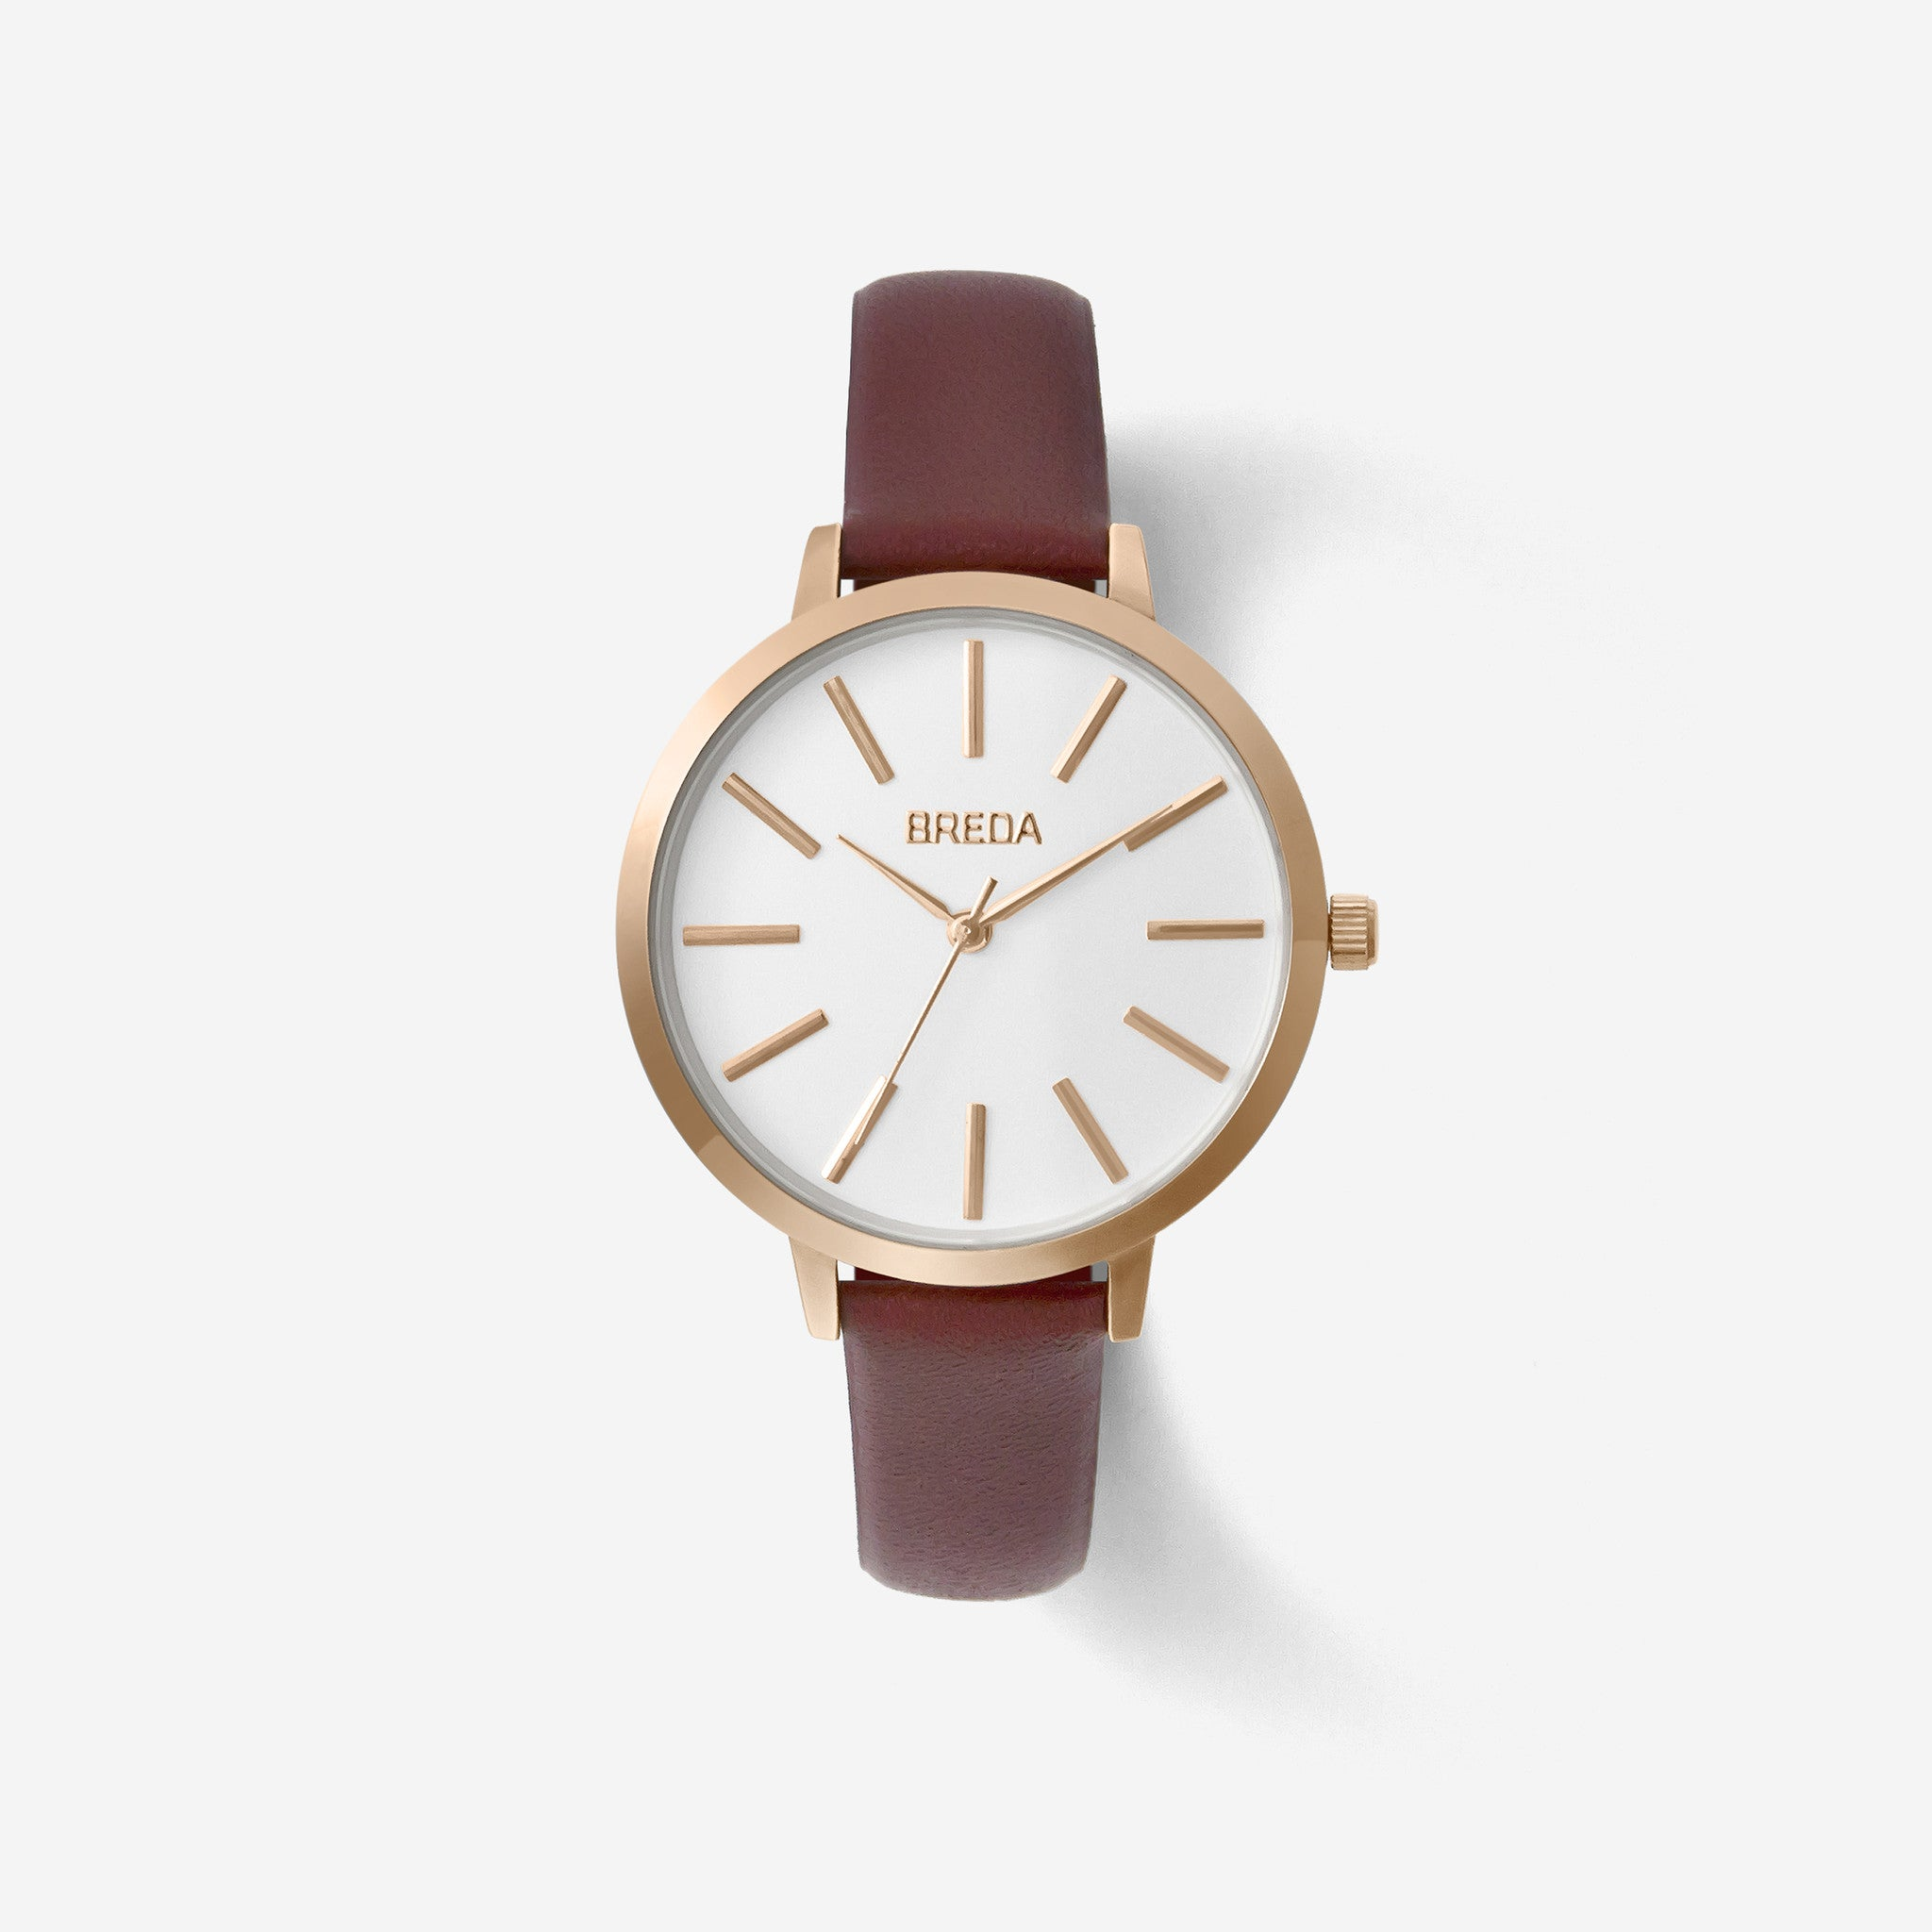 //cdn.shopify.com/s/files/1/0879/6650/products/breda-joule-1722d-rosegold-maroon-watch-front_1024x1024.jpg?v=1490812504